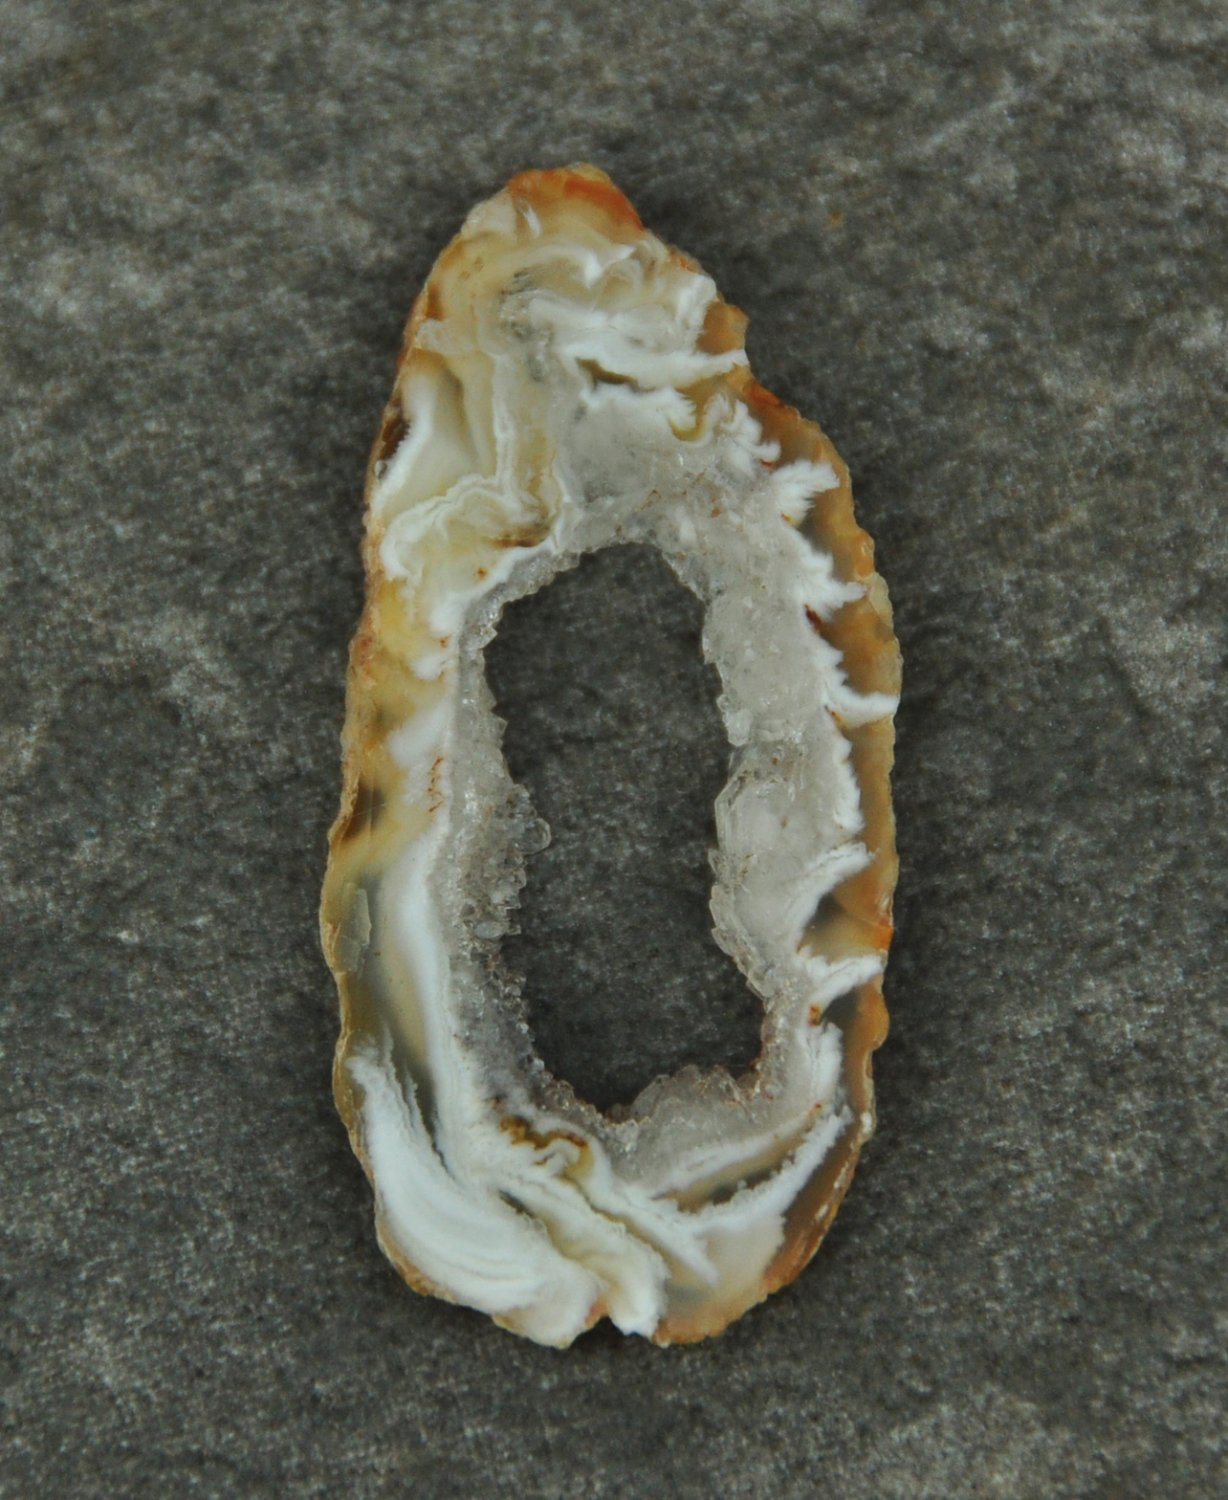 Small Druzy Agate Geode Slice #3 Undrilled for Jewelry Wire Wrap